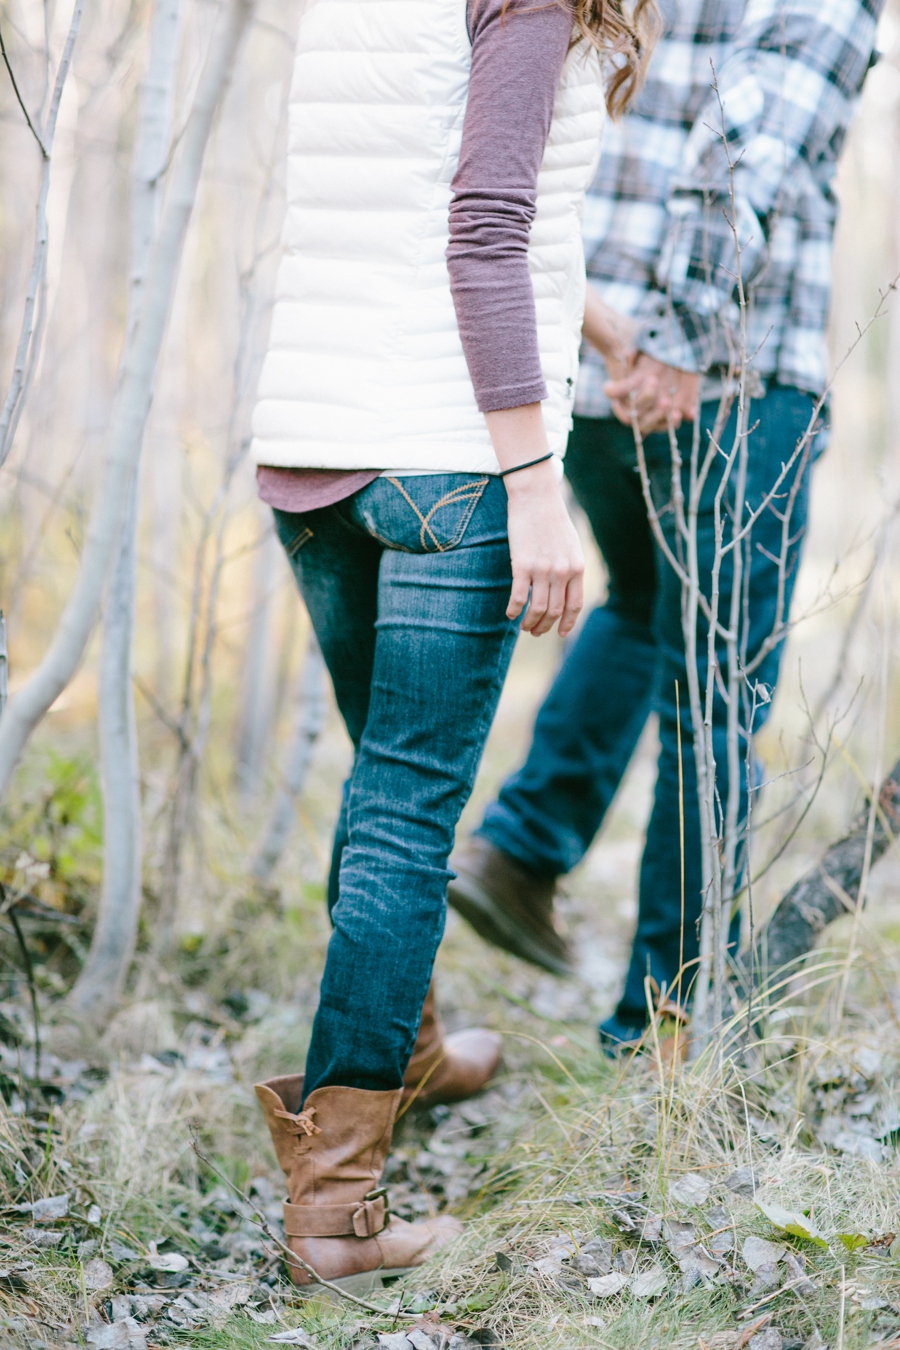 221_Shevlin_Park_Bend_Oregon_Engagement_Photo.JPG